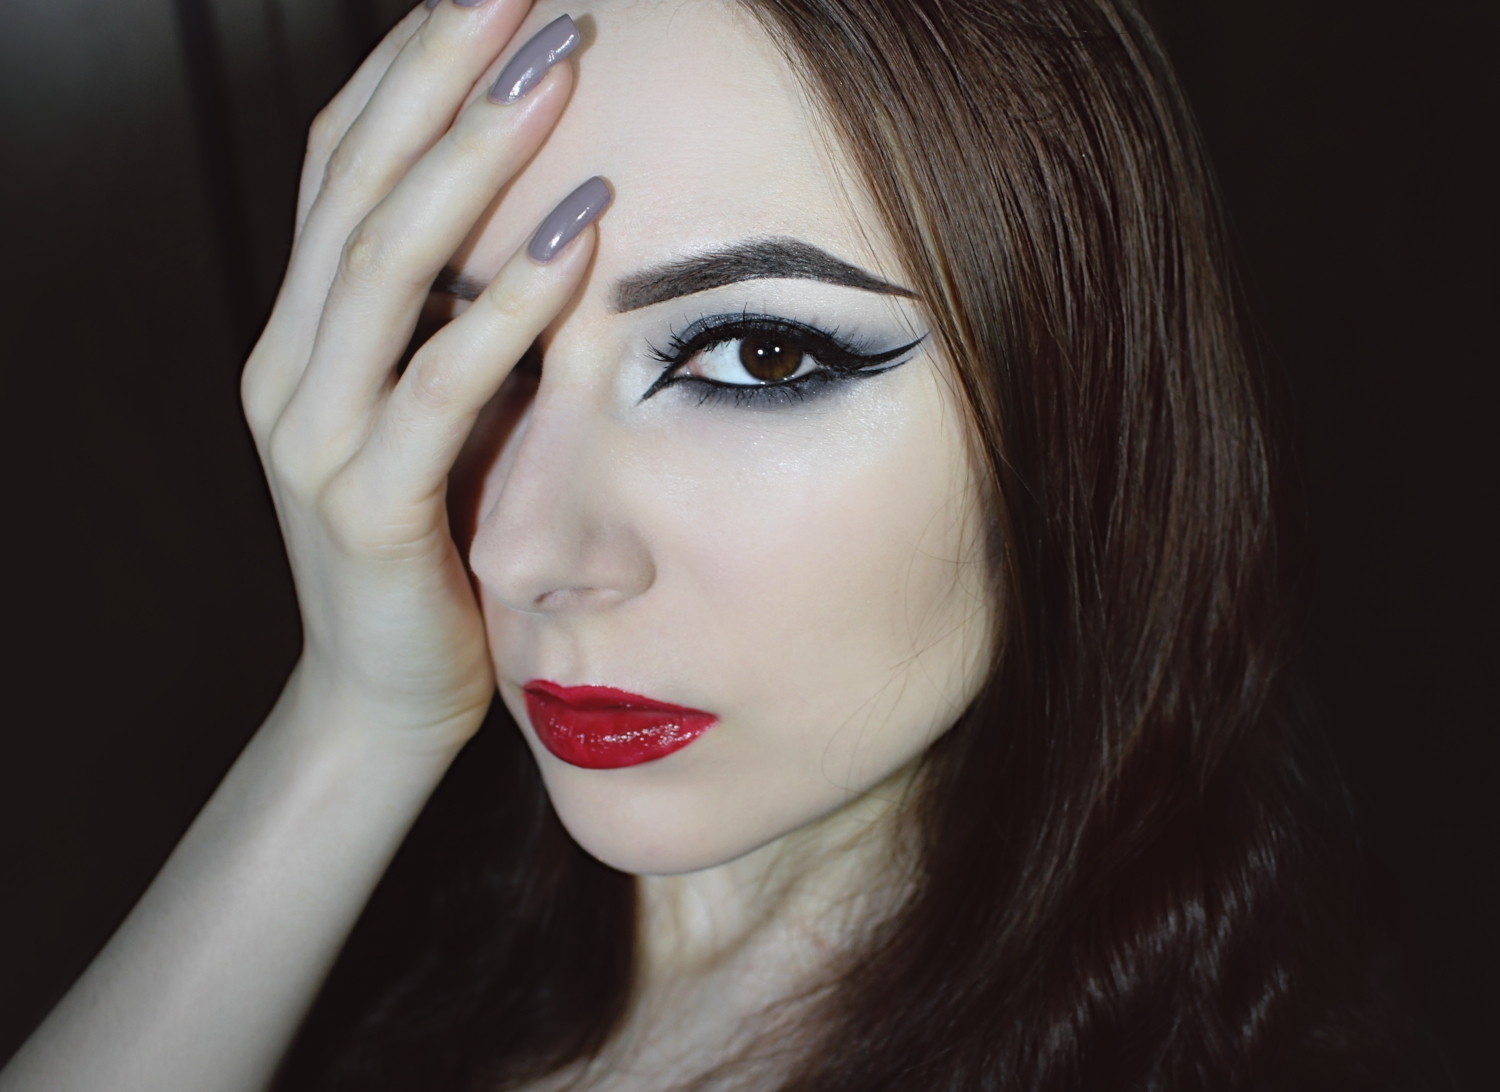 girl with smoky eye makeup, double eyeliner and red glossy lips is showing her makeup